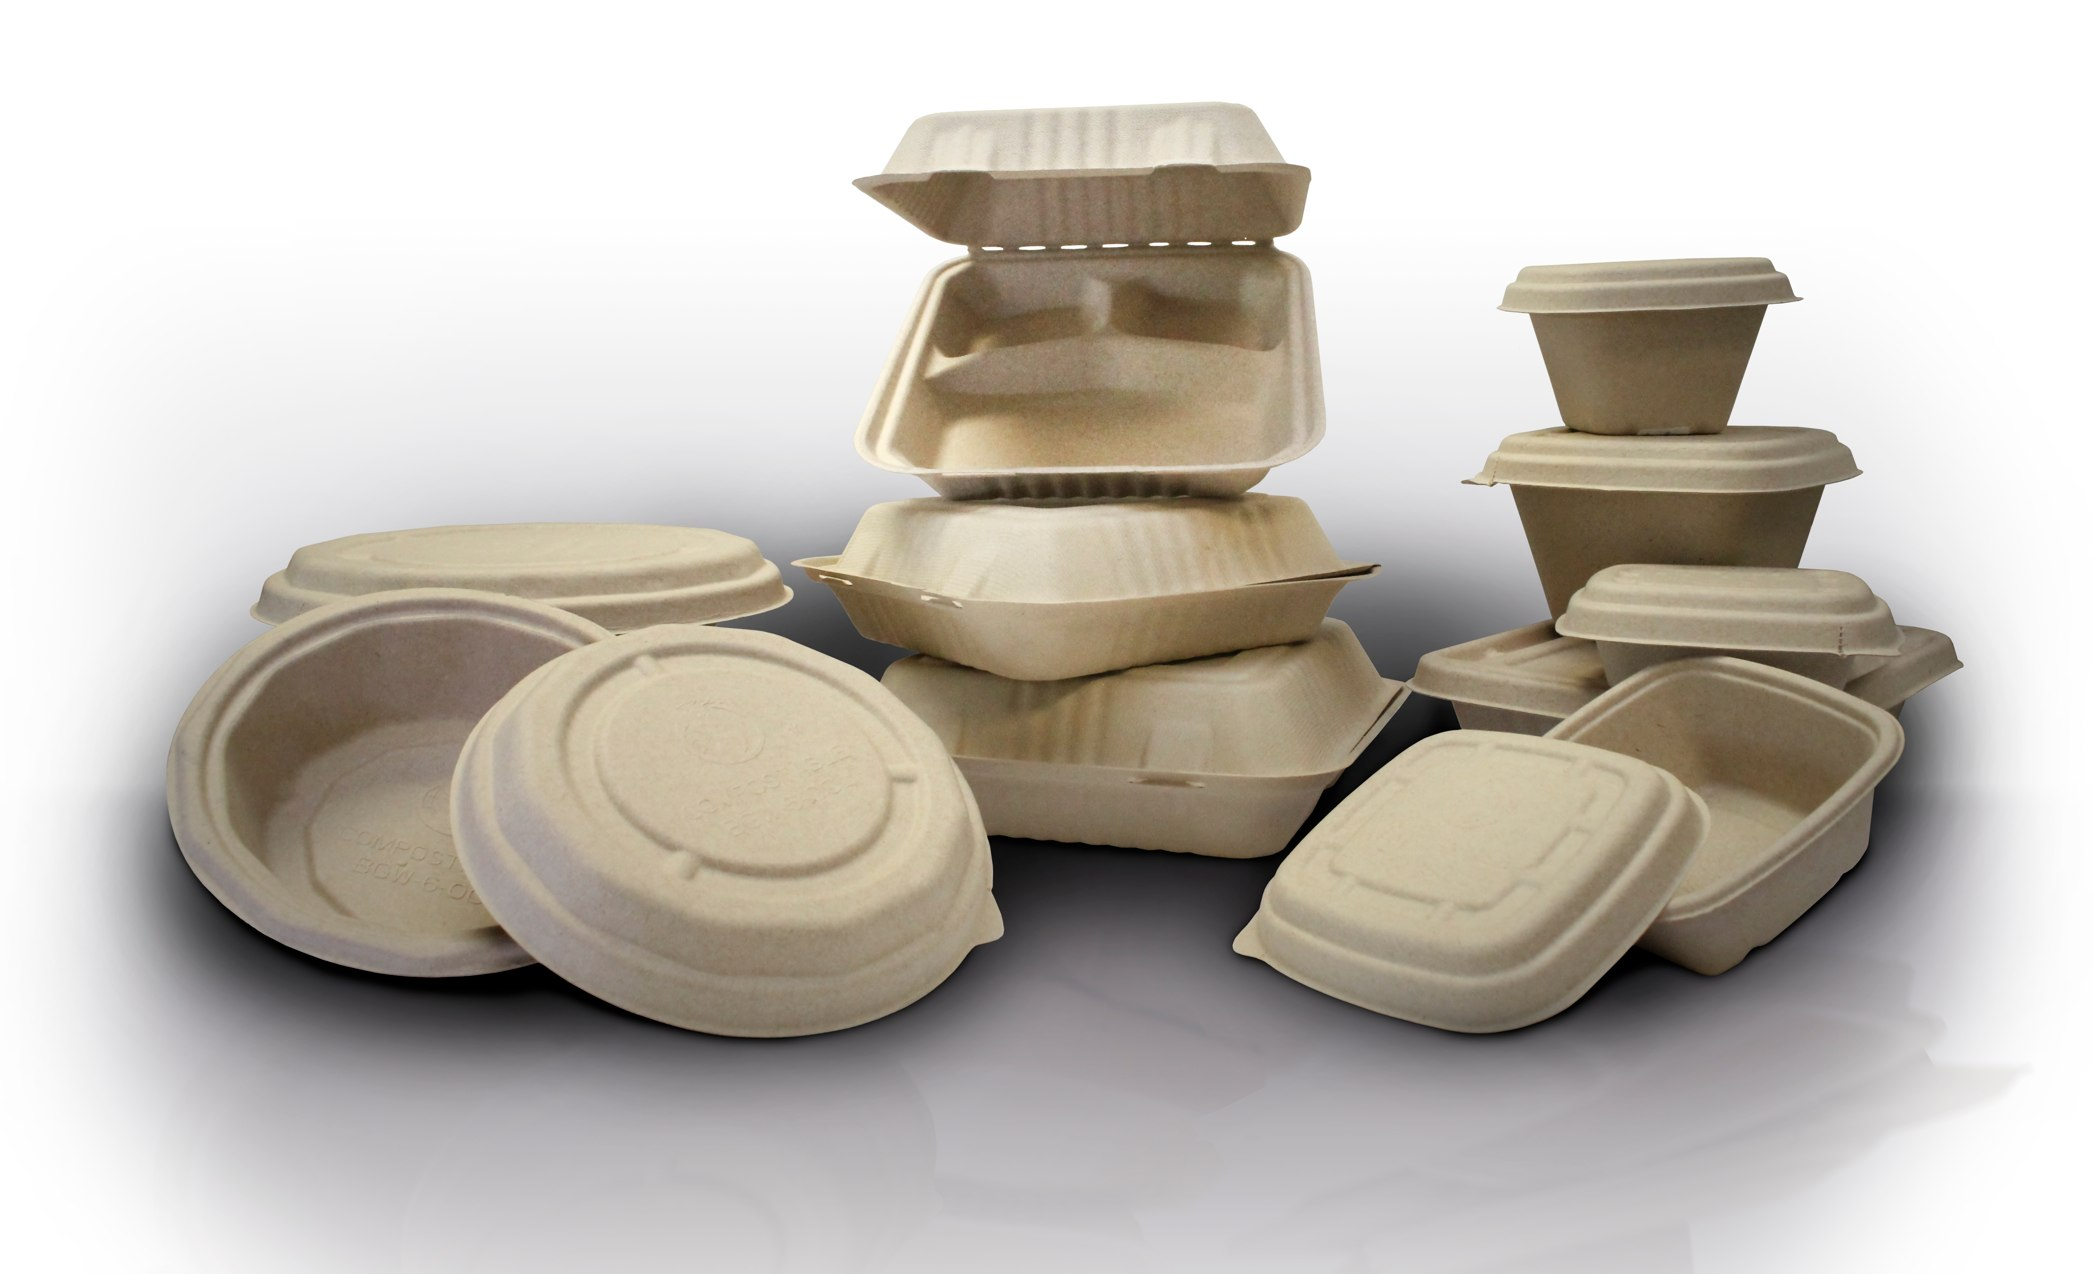 Bridge-Gate compostable take-out containers Bridge-Gate compostable plates  sc 1 st  Online Press Release Distribution Service & Excellent Packaging u0026 Supply Adds Bridge-Gate Serving Ware and ...